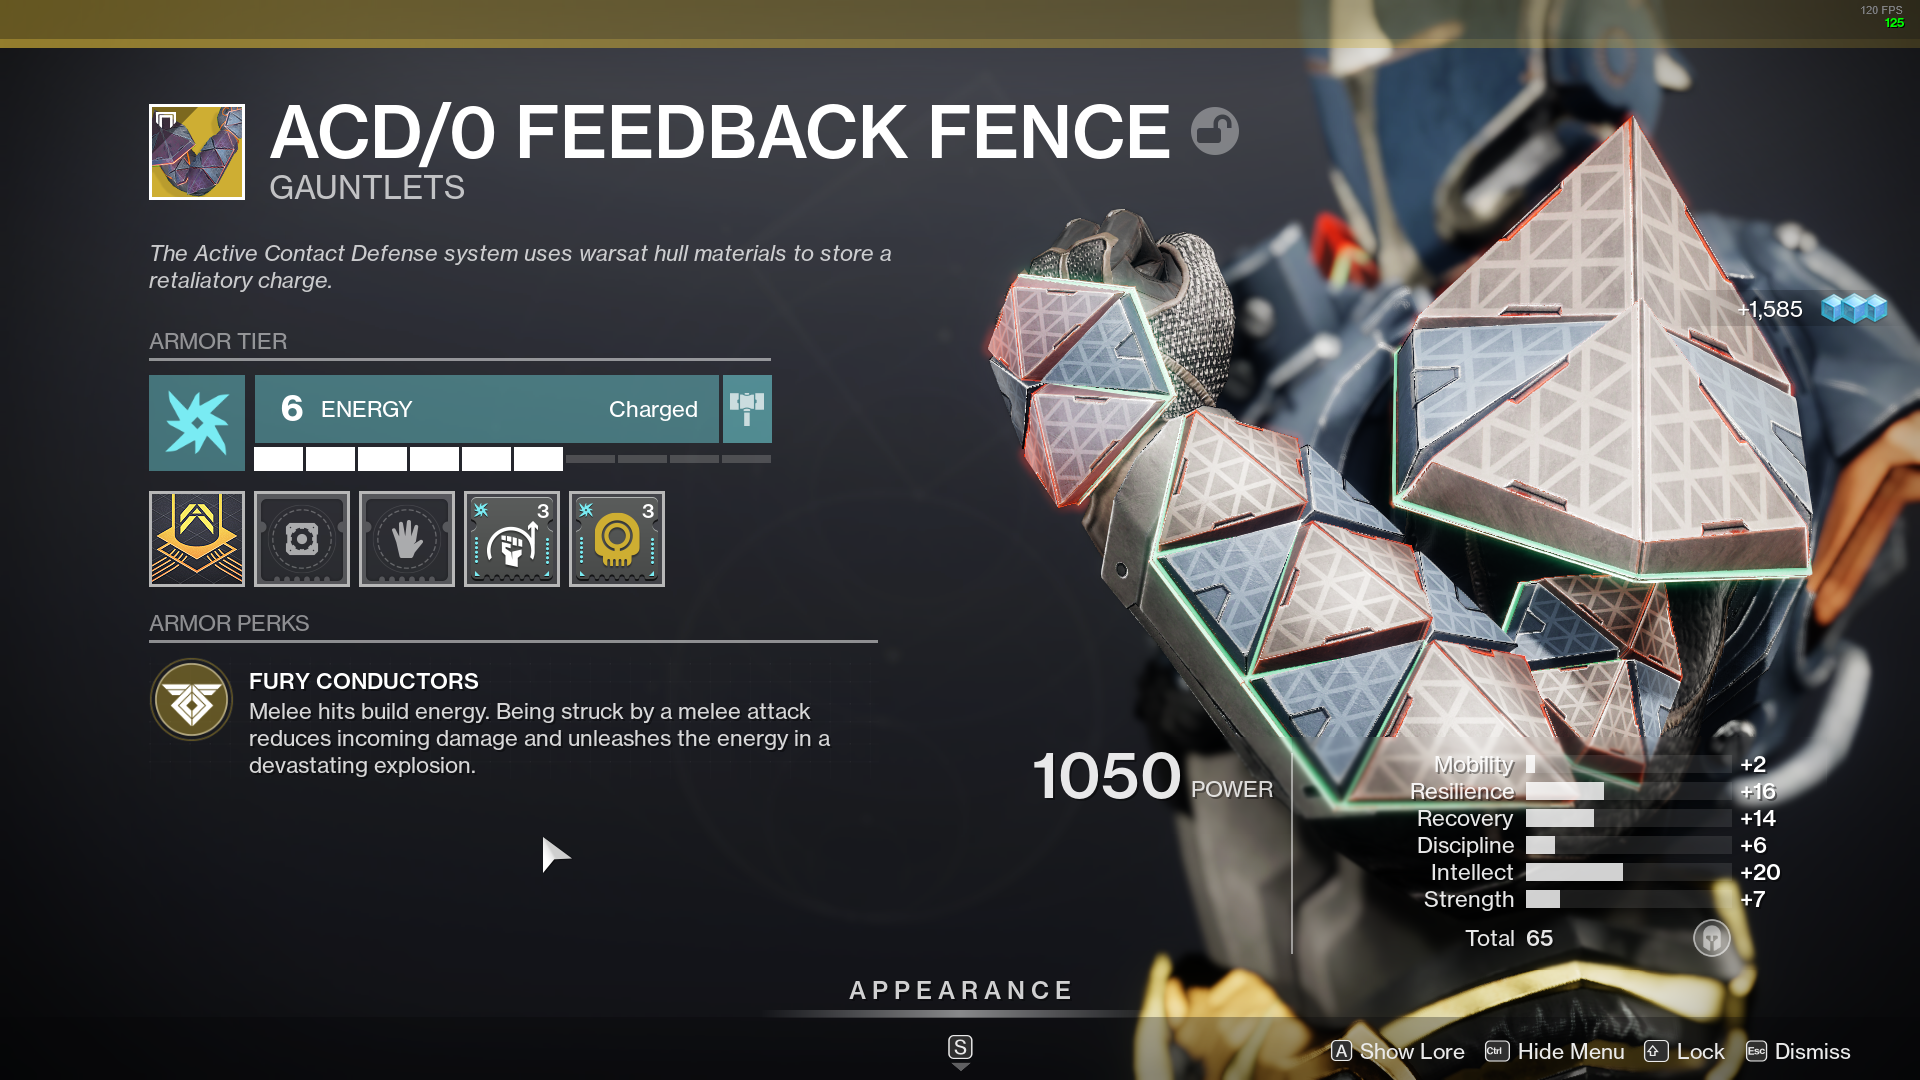 Exotic ACD/0 Feedback Fence guantlet item equipped in Destiny 2 inventory menu